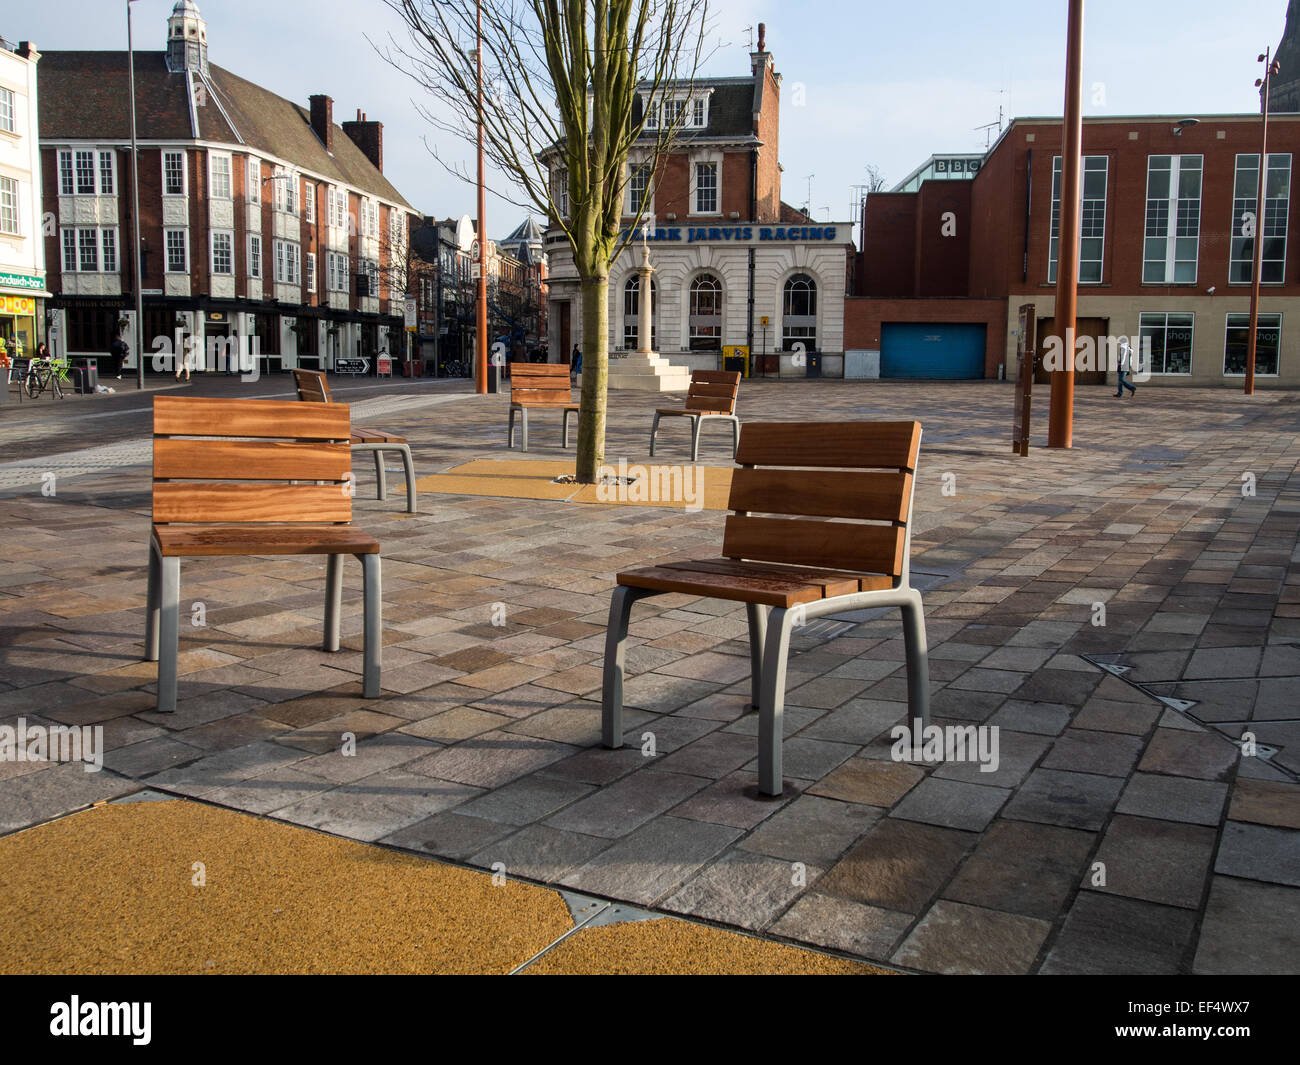 Street Furniture: Wood on metal seating fixed into the granite pavement area of the Jubilee Square, Highcross, Leicester. - Stock Image